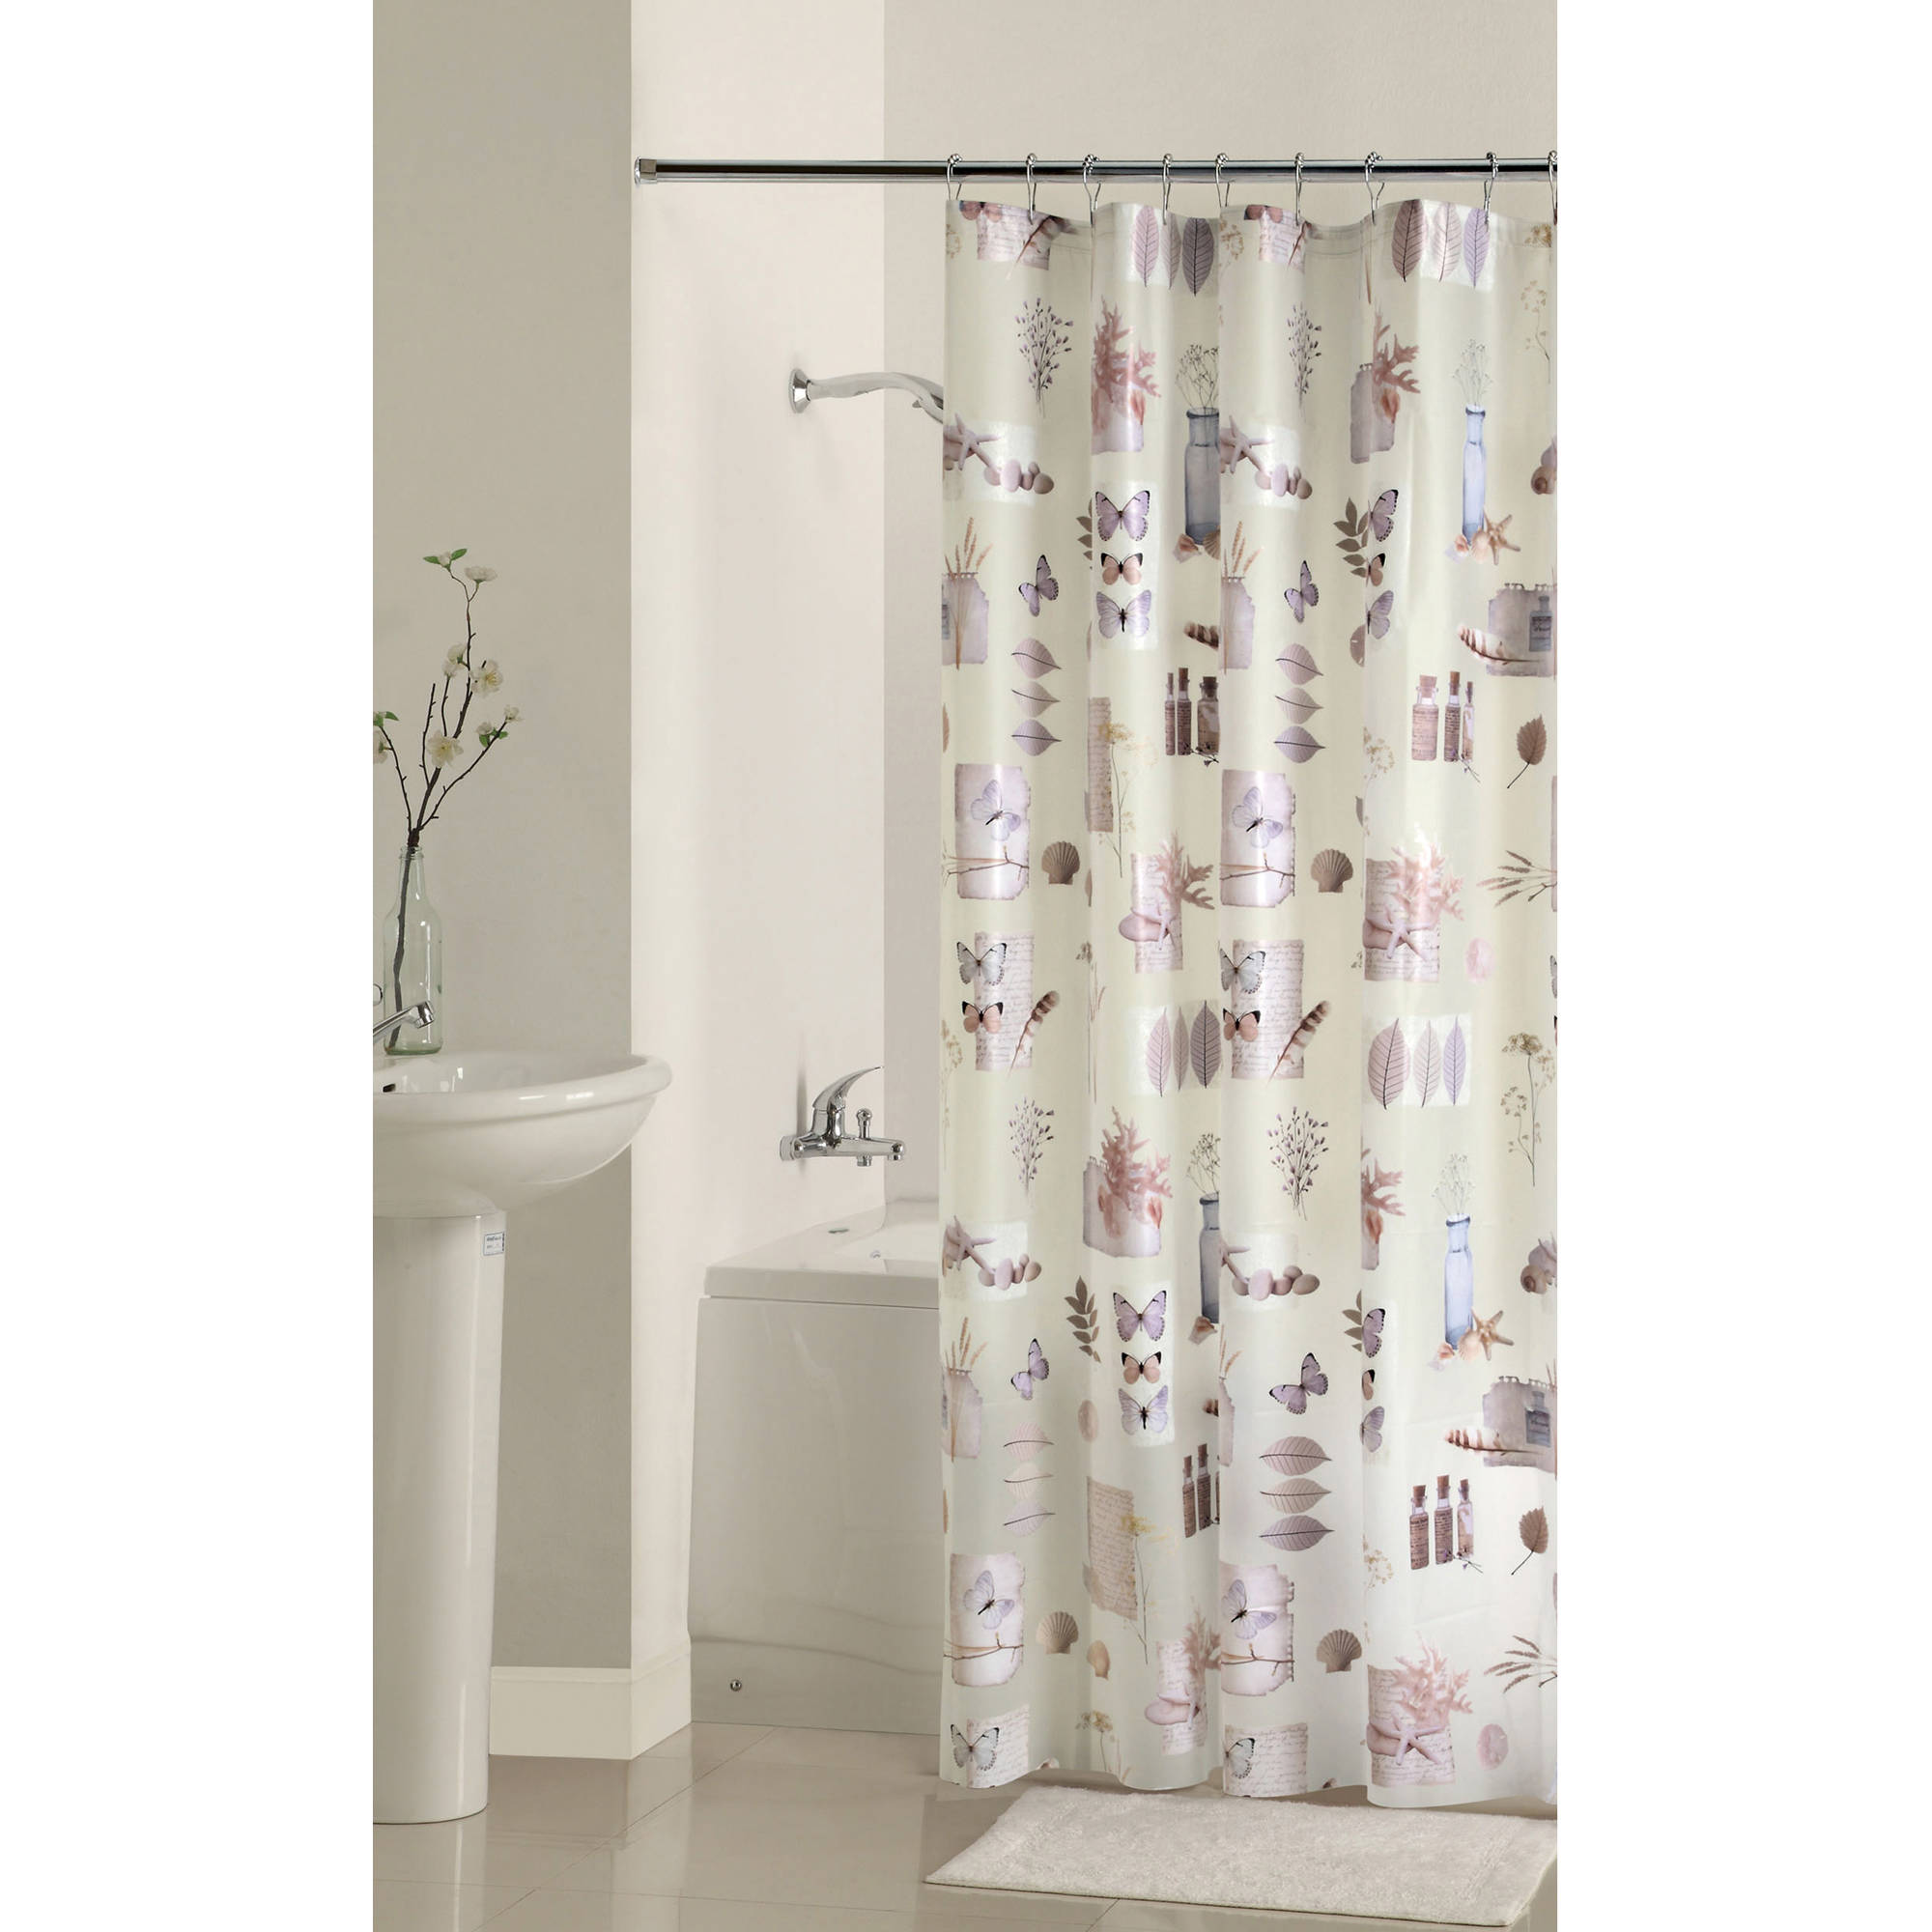 Mainstays Bamboo Nature's Momemts PEVA Shower Curtain